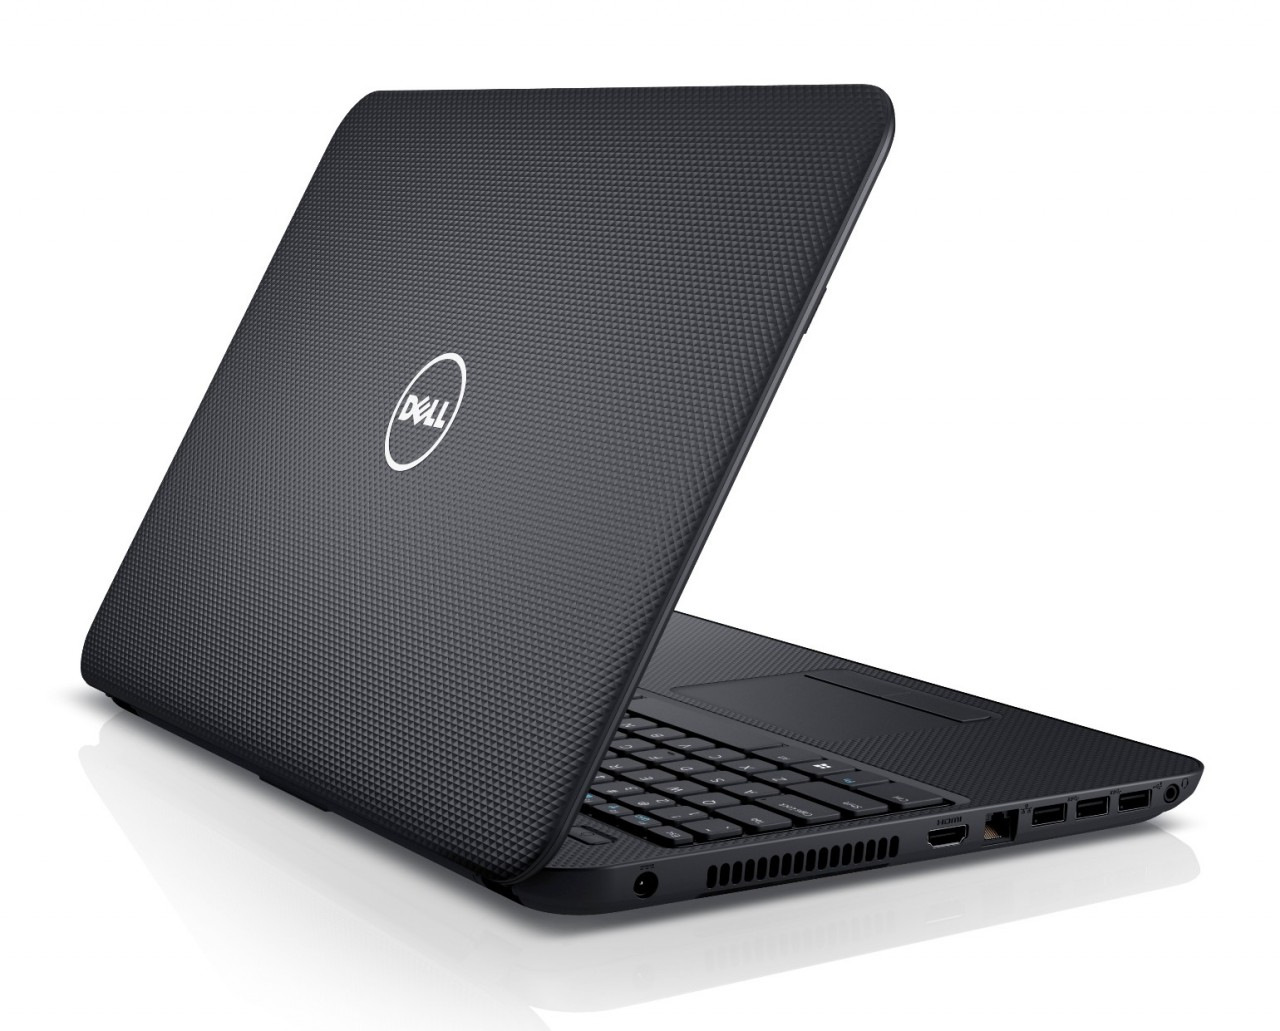 DELL Inspiron 3521 Intel 2117U 4GB